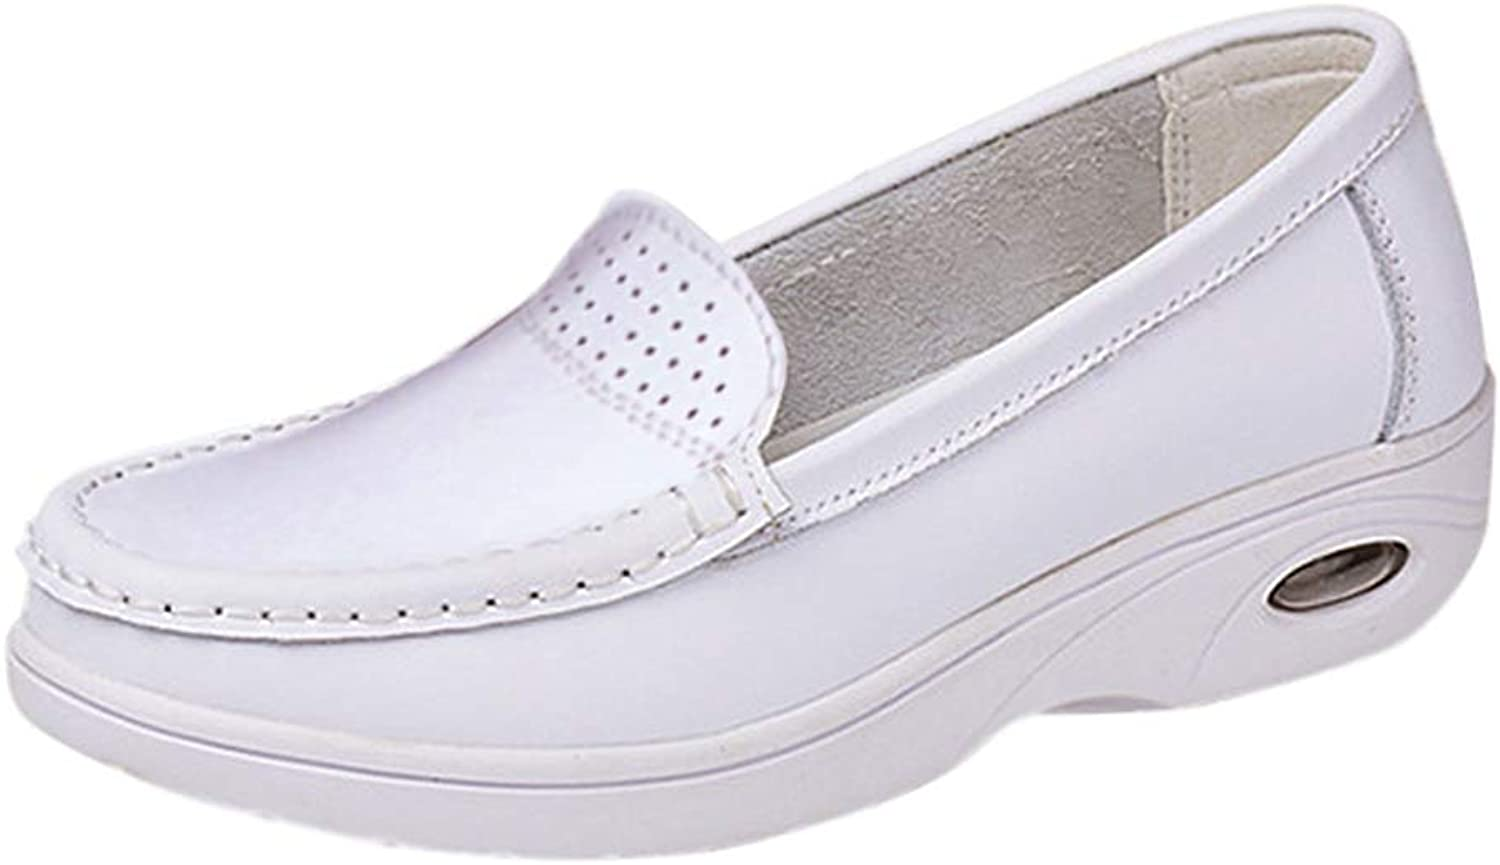 Uirend Leather Nurse shoes Women - Ladies Moccasins Air Cushion Platform Wedge Heel Loafers Flats Comfort Casual Work Driving Boat shoes